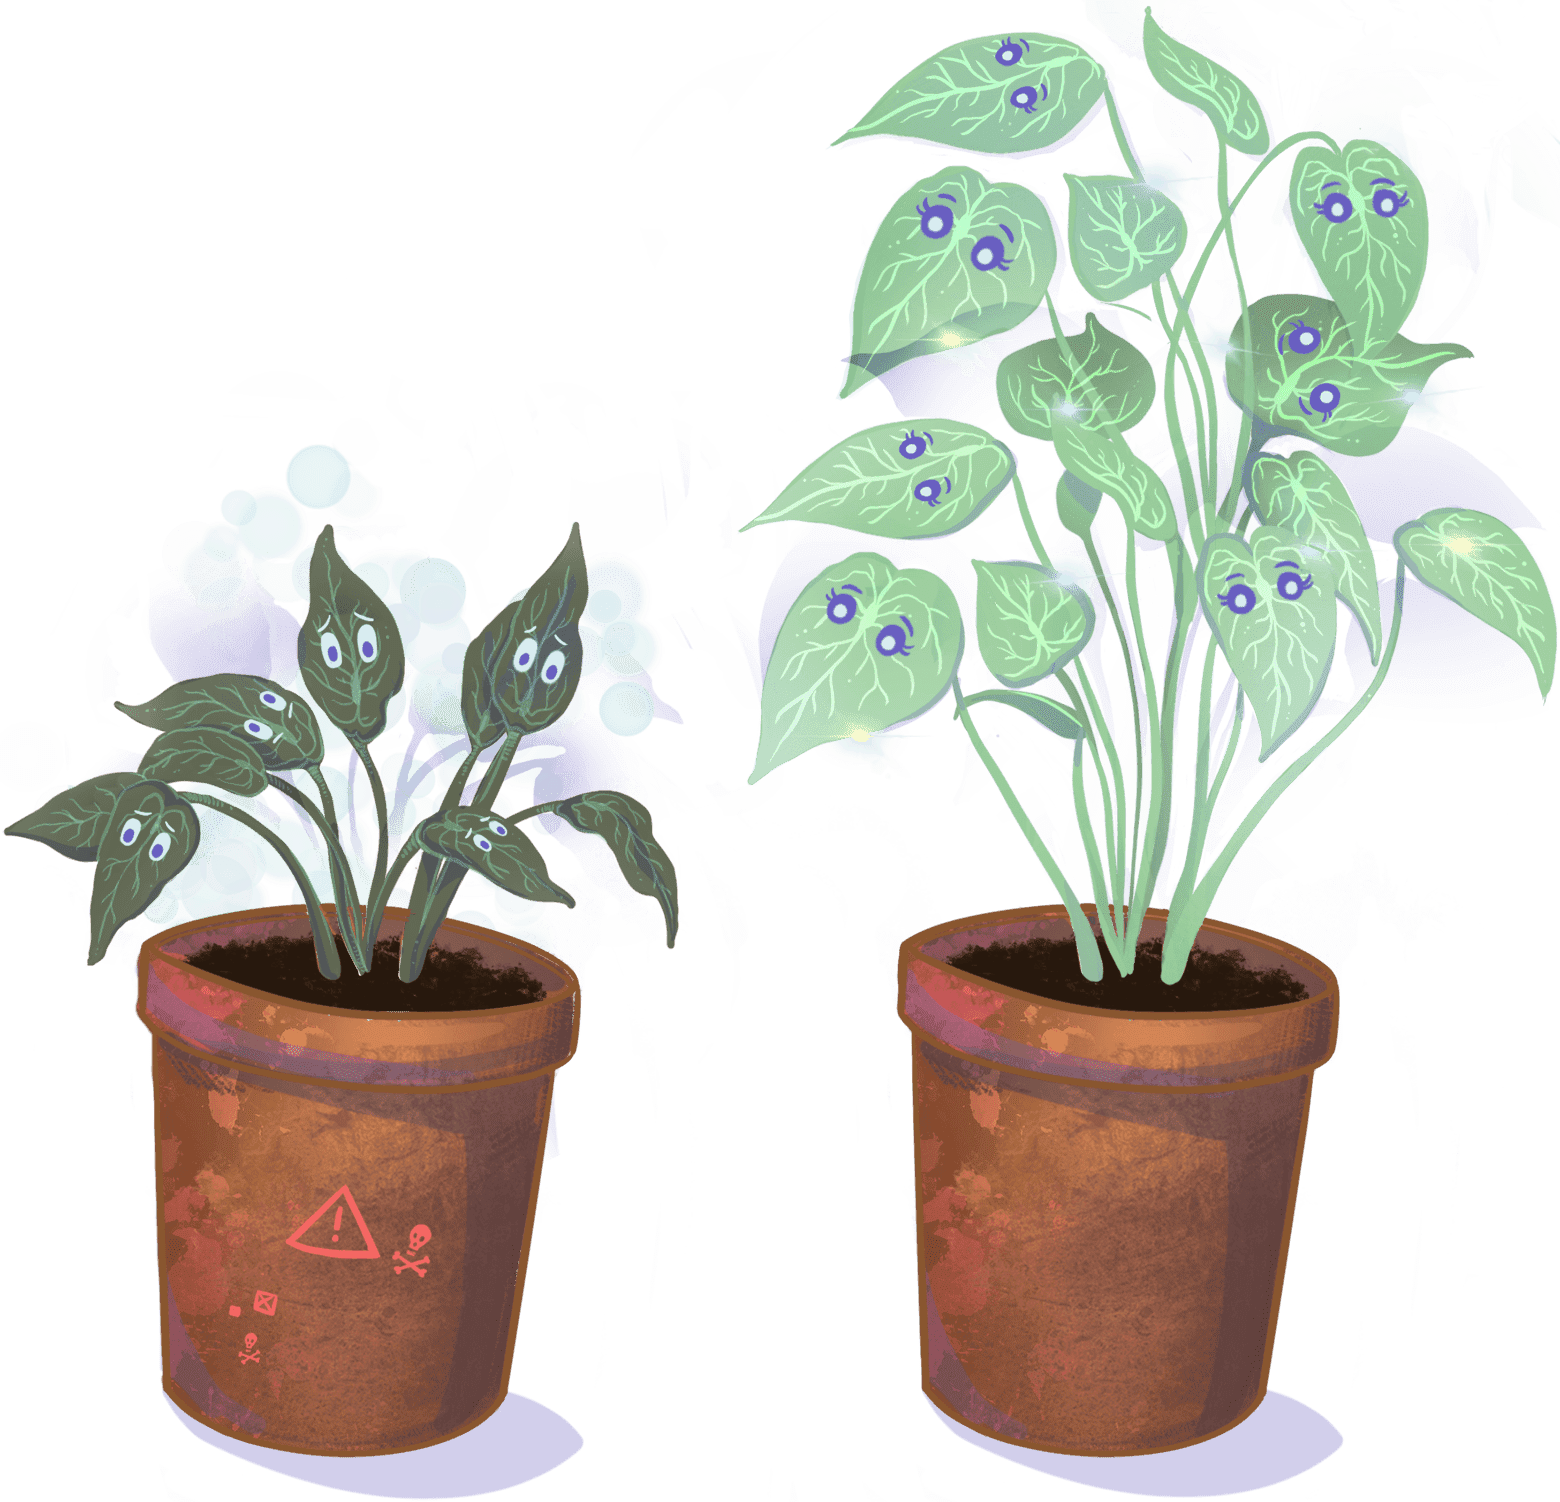 Illustration of wilted and healthy plants side by side